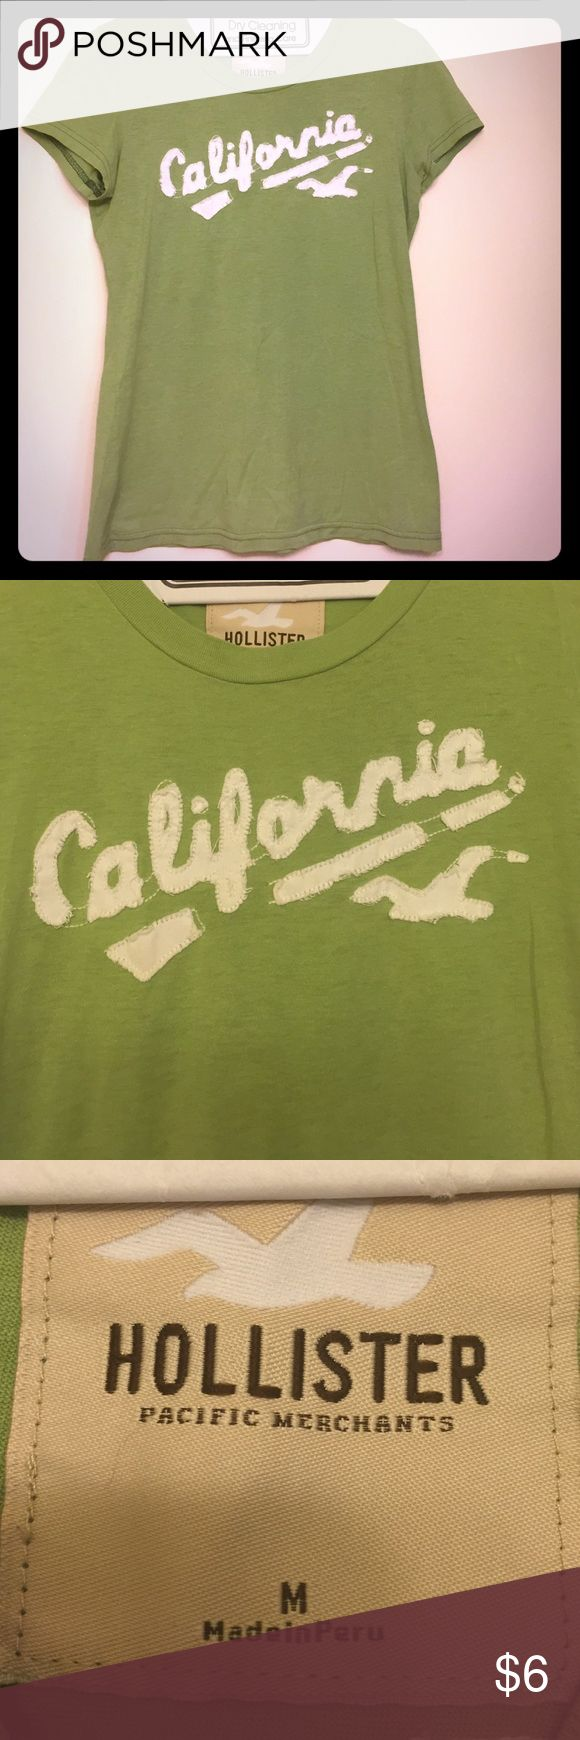 """Hollister Soft Tee for summer! Super soft green women's tee shirt says """"California"""" on the front and has the number """"9"""" on the back. Tops Tees - Short Sleeve"""